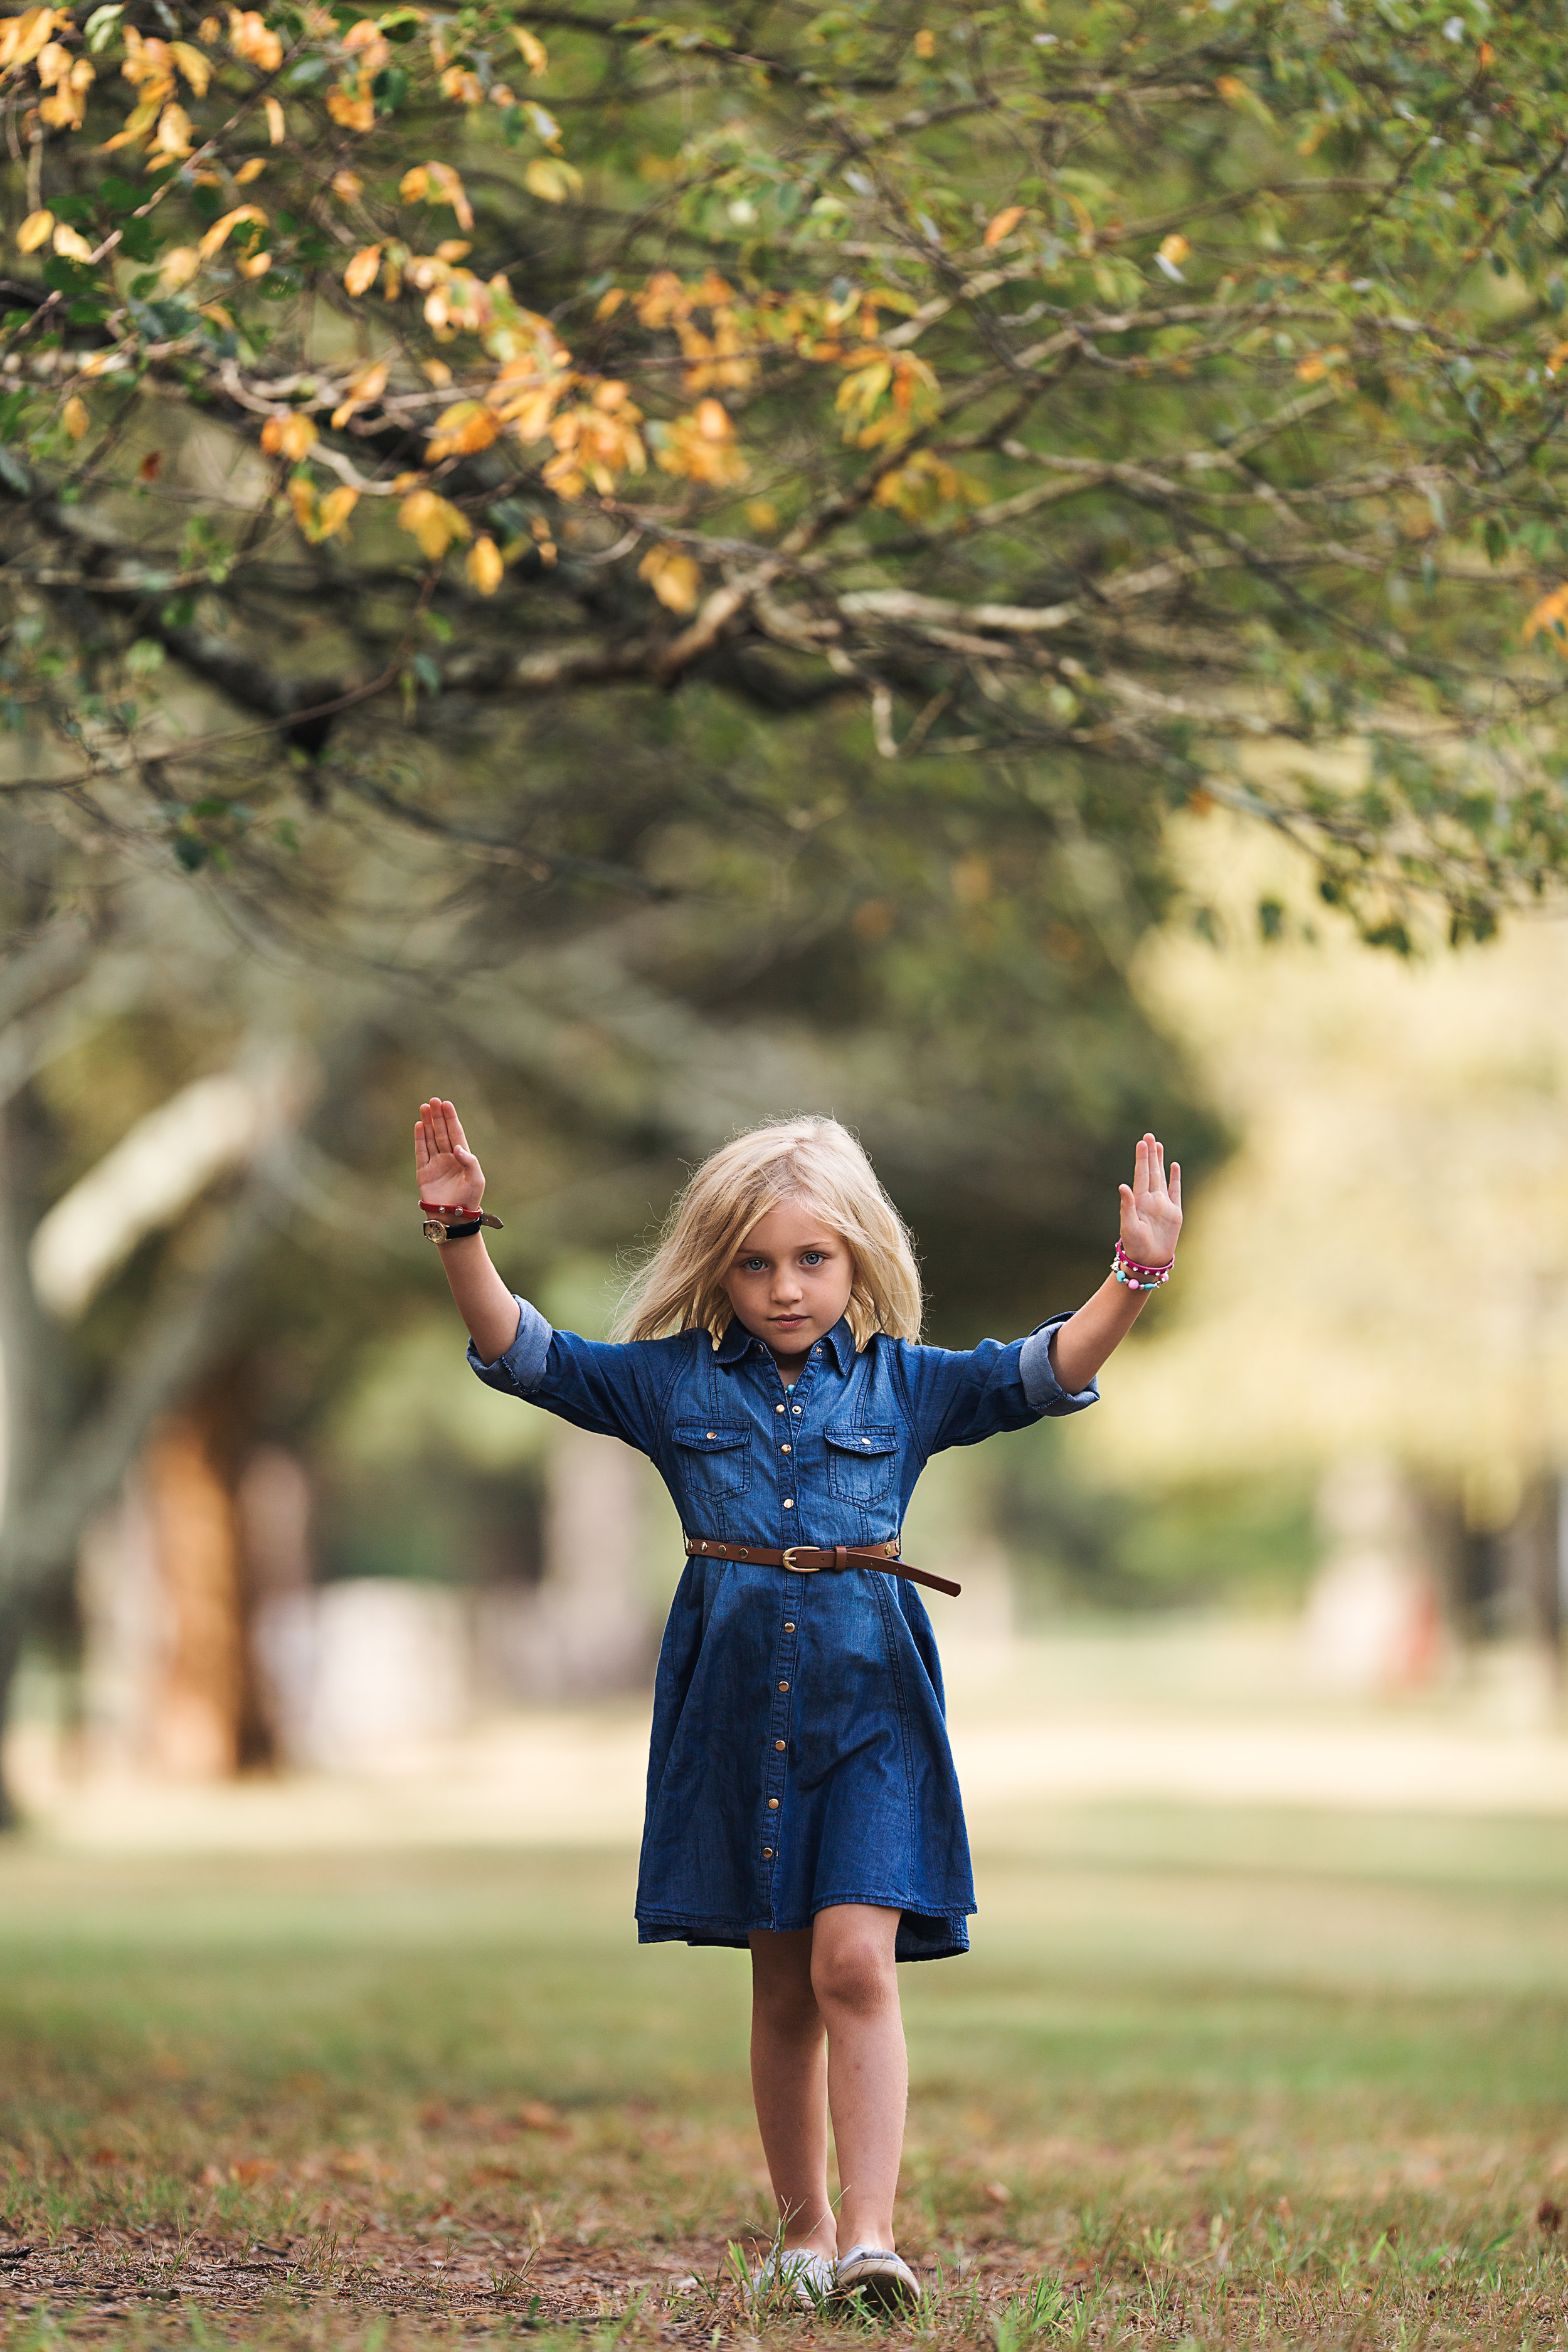 Hello-olivia-photography-Long-island-photography-children-session-family-lifestyle-hnds-up.jpg